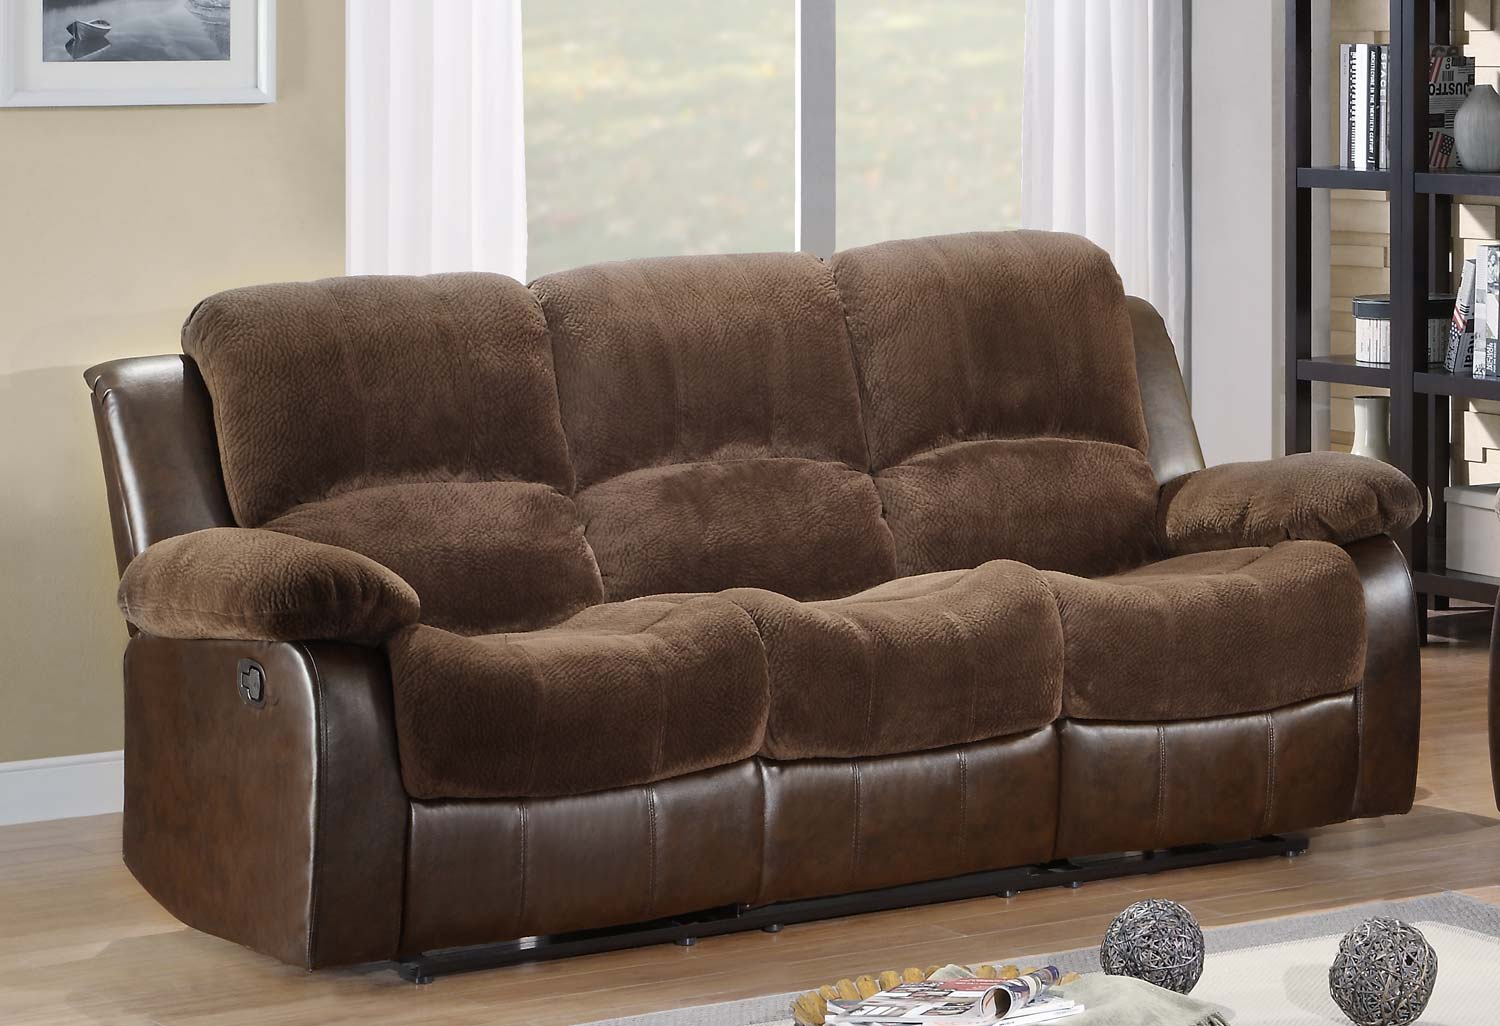 Click N Clack Sofa The Click Clack Sofa The Best Choice For A Sofa Bed